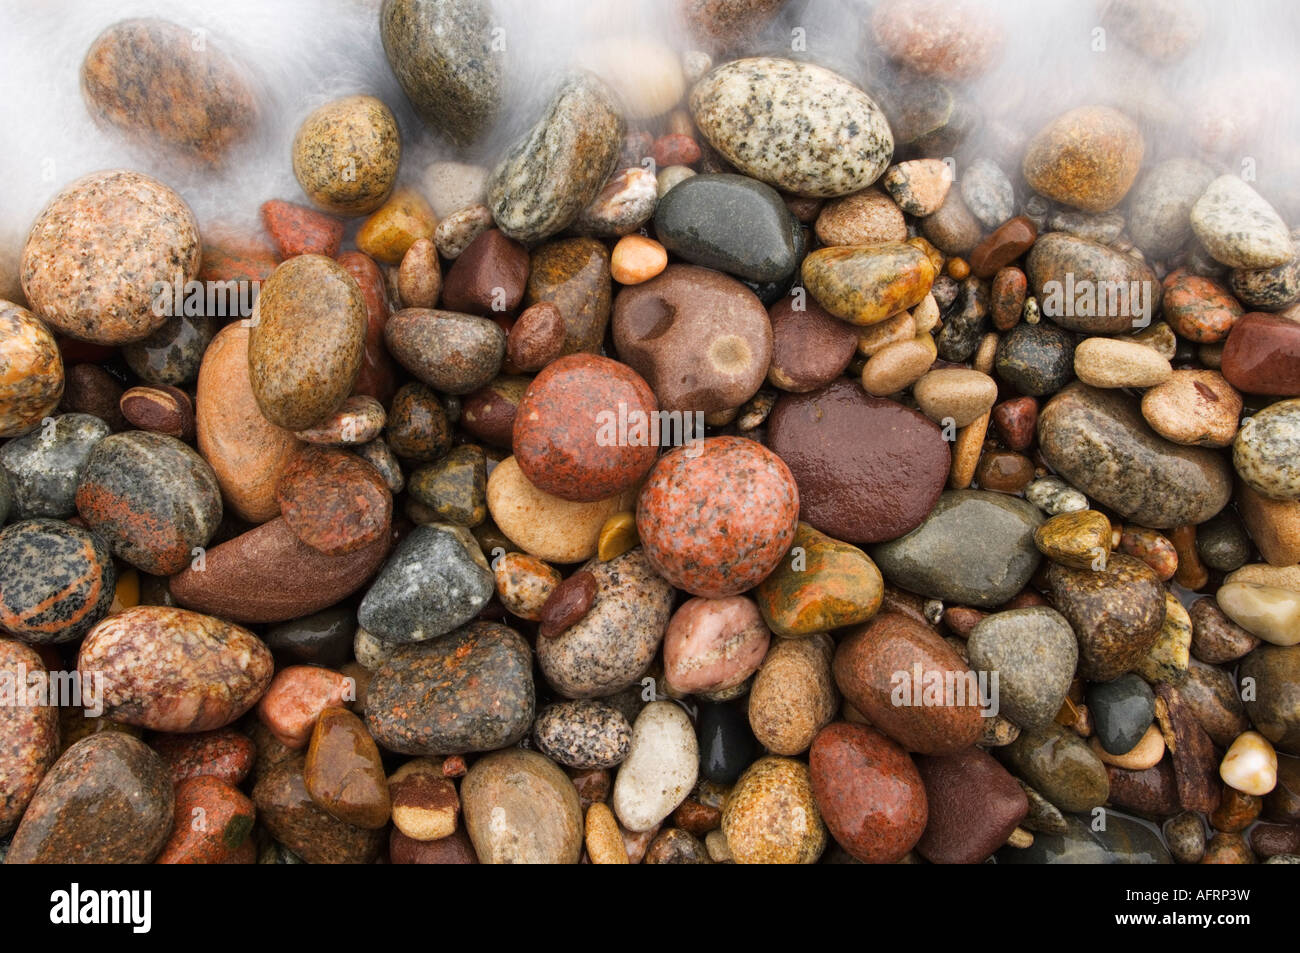 A crashing wave moves over colorful Great Lakes beach rocks on Lake Superior, Michigan - Stock Image